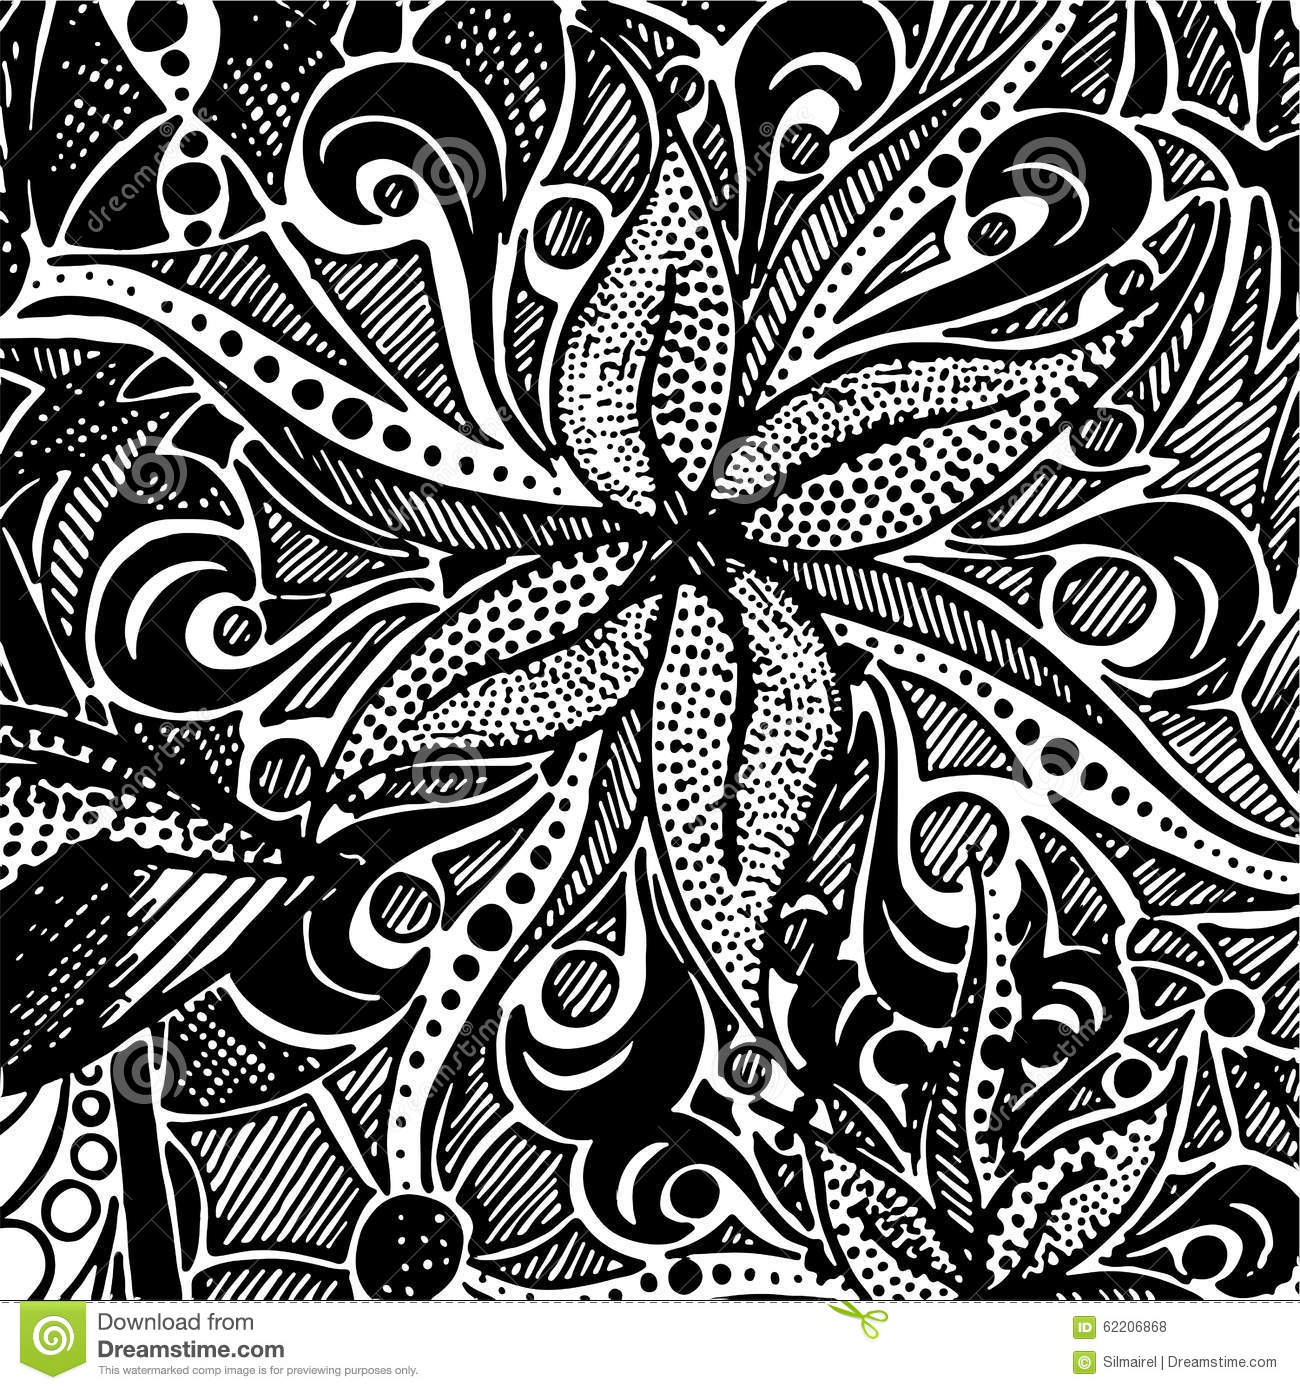 Black And White Monochrome Zentangle Doodle Vector Pattern